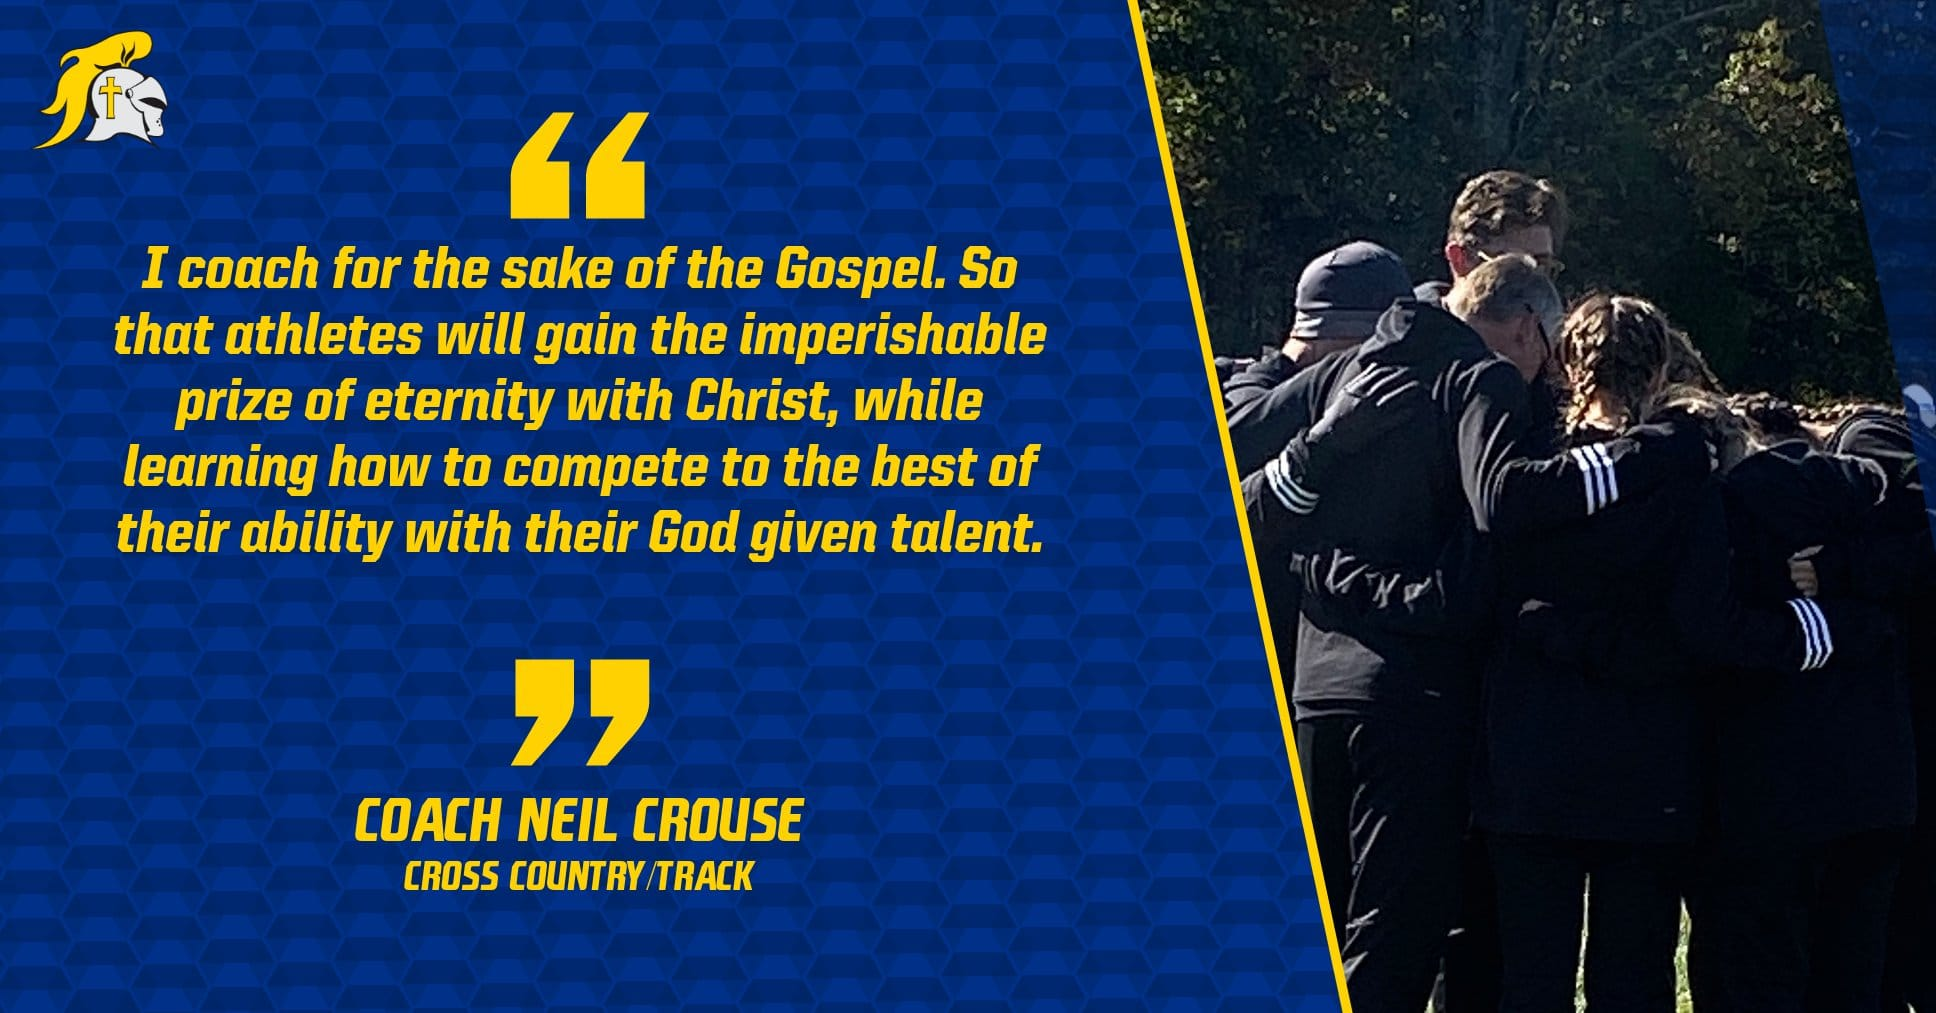 Christian Academy School System | Christian Academy of Indiana | Cross Country and Track | Coach Crouse's Transformational Purpose